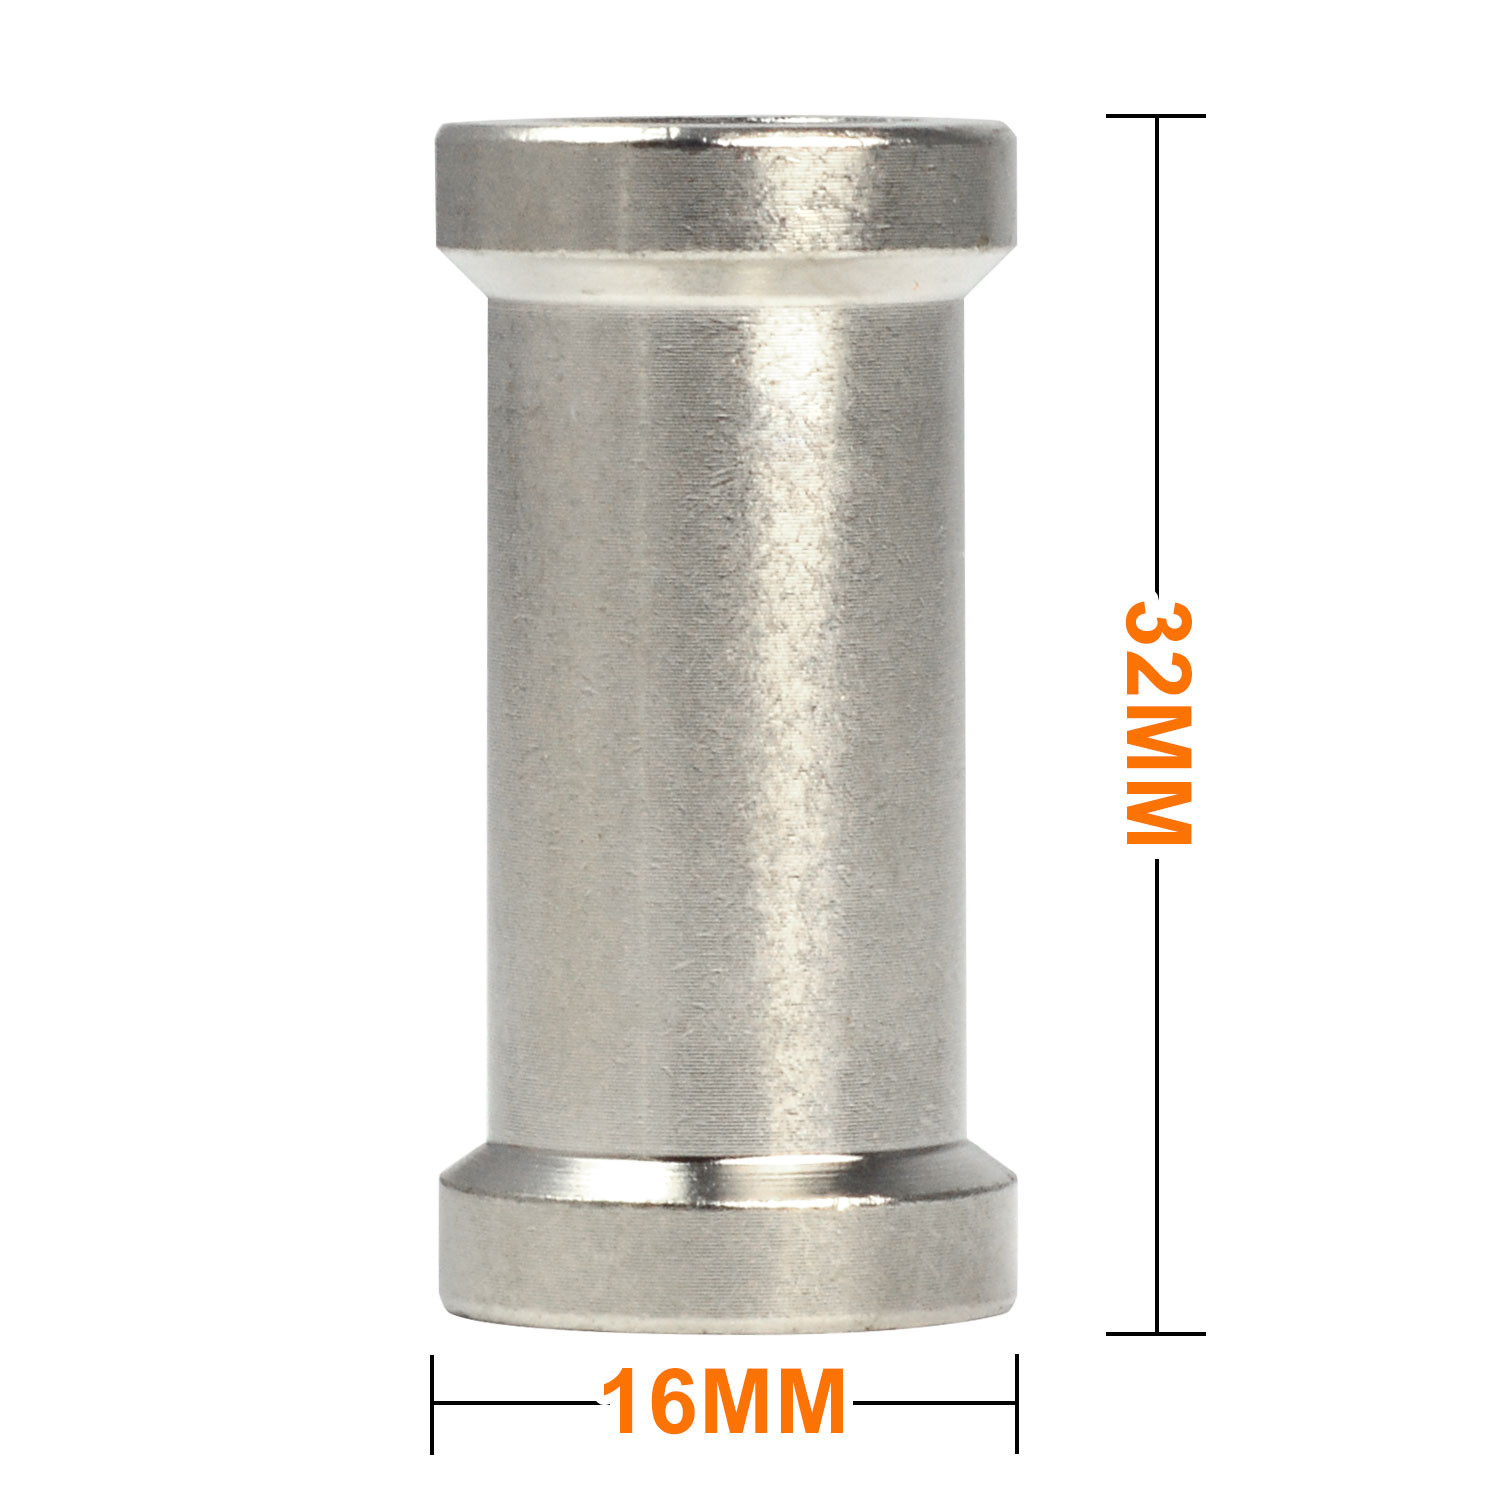 Light Stand Spigot Sizes: MENGS® Stainless Steel 1/4″ To 3/8″ Female